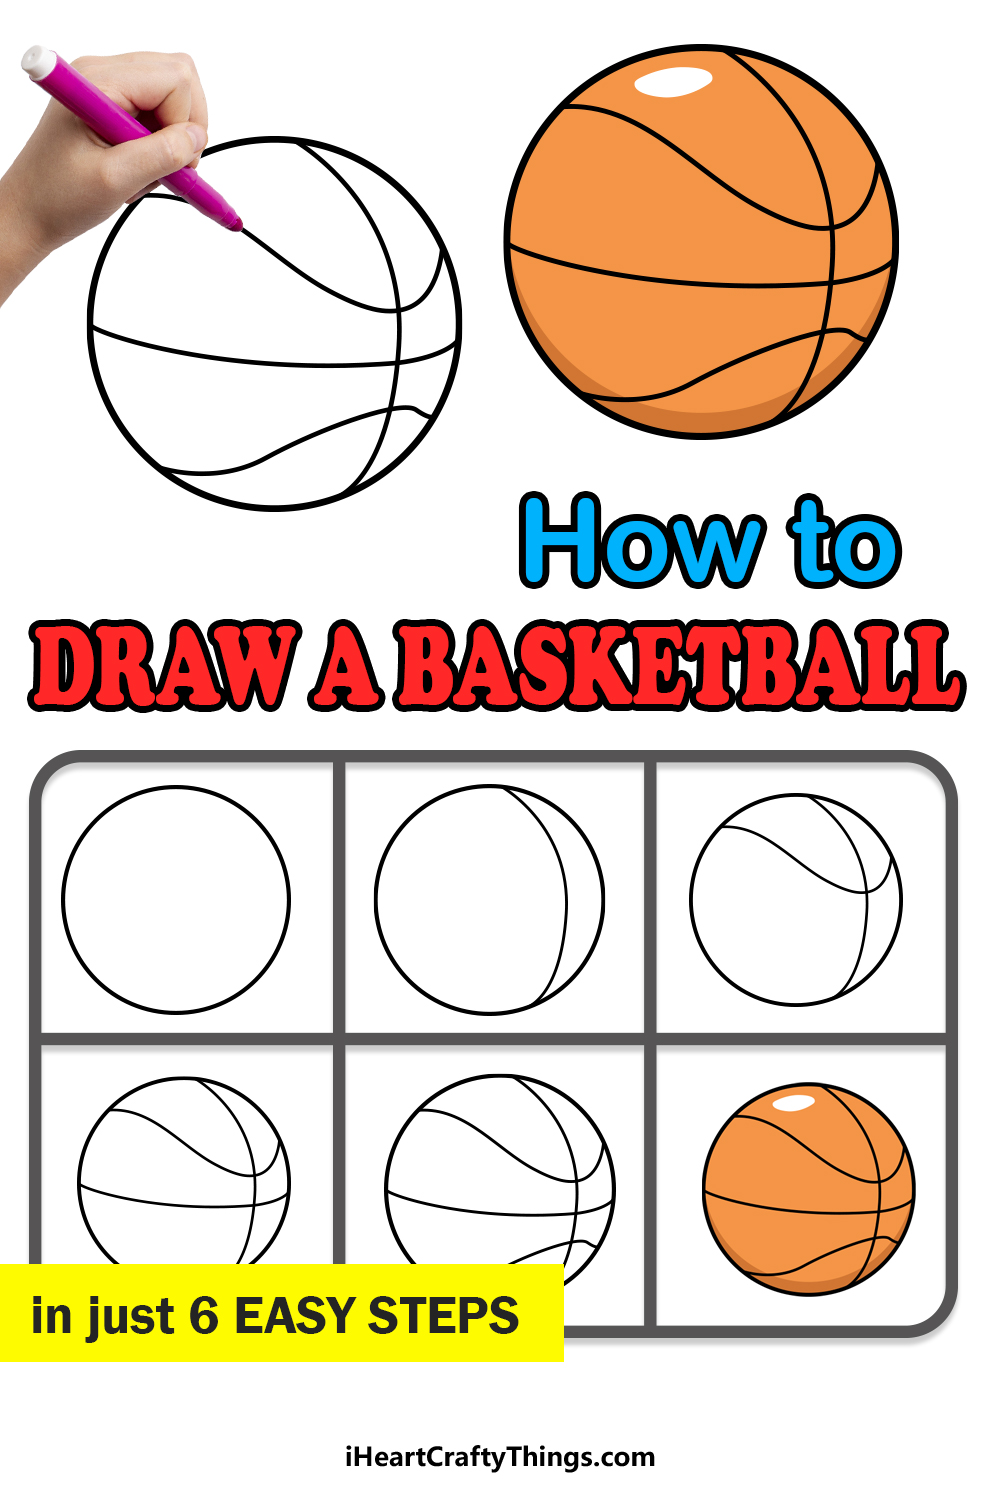 how to draw a basketball in 6 easy steps